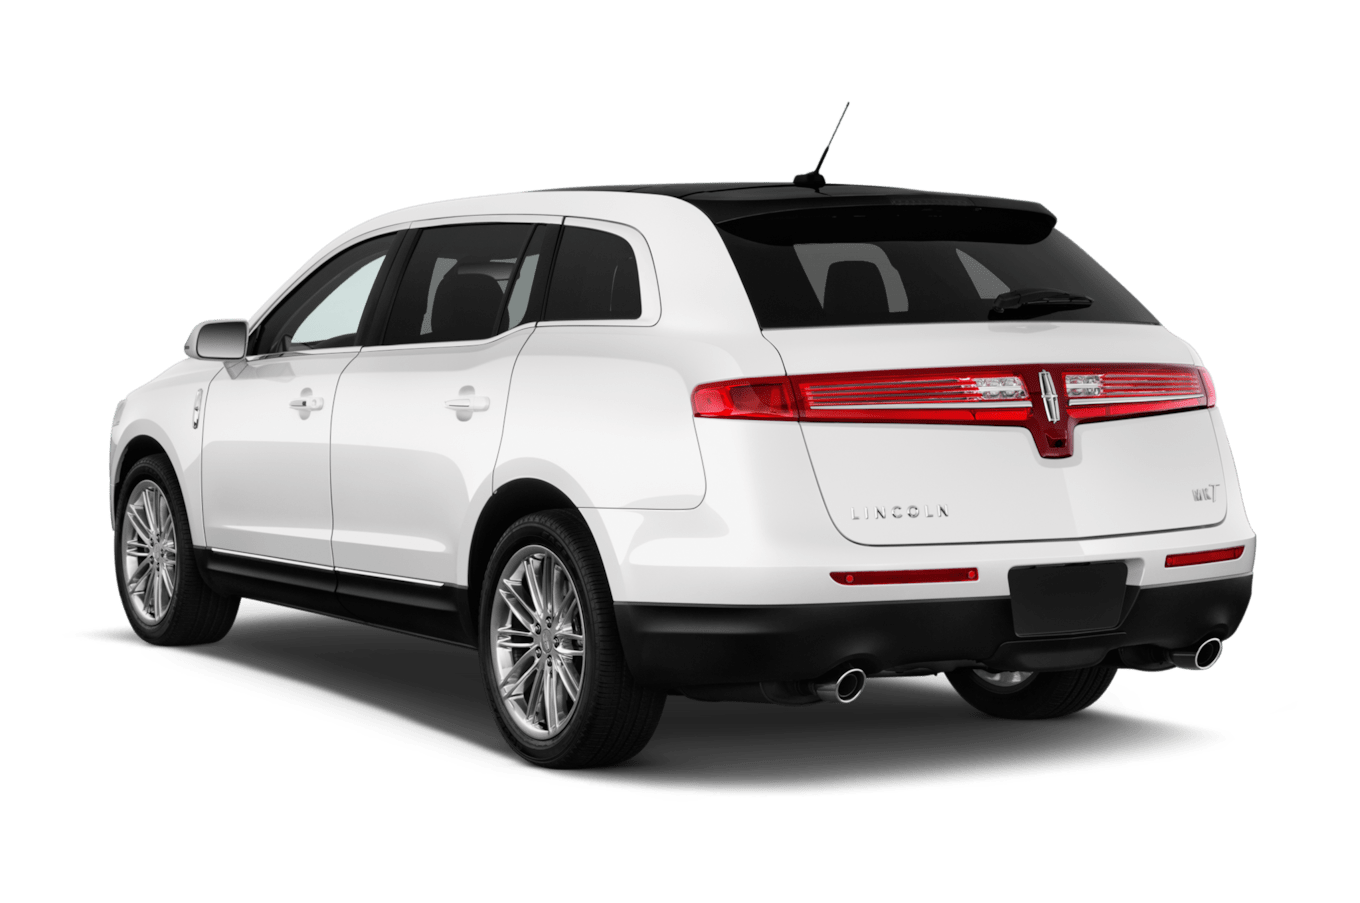 2018 Lincoln Mkt Reviews And Rating  Motor Trend